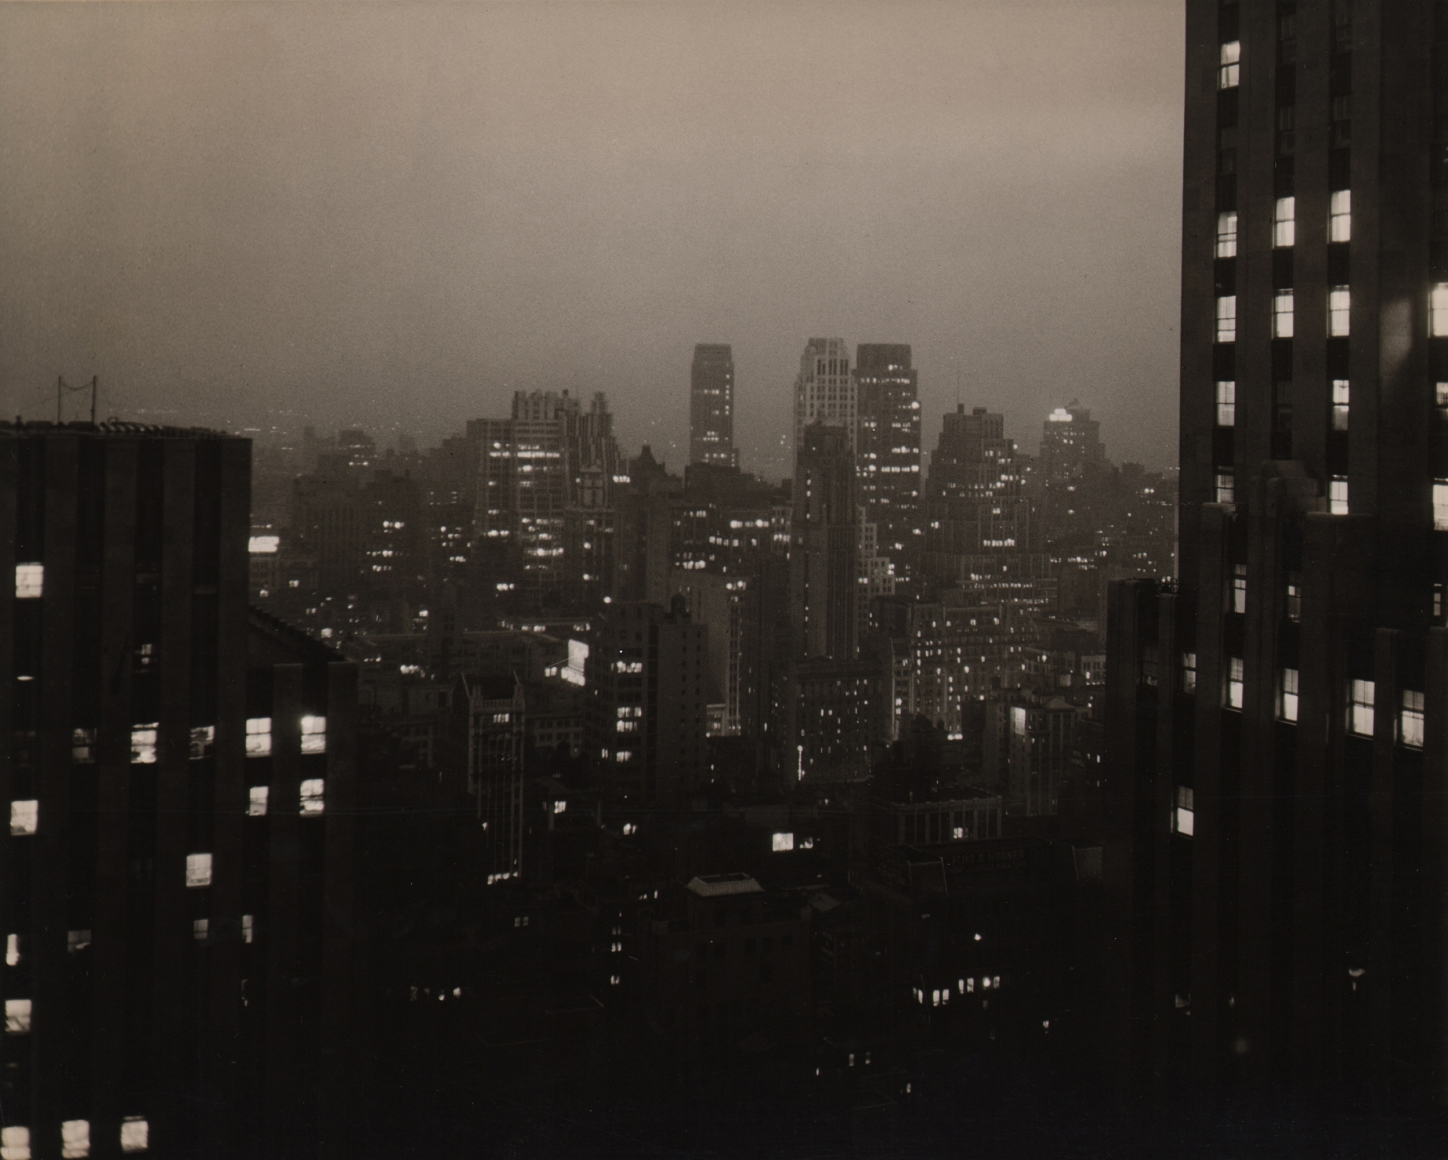 Paul J. Woolf, New York Skyline at Night, c. 1935. Night time cityscape. Two close buildings on the left and right foreground with skyscrapers across the background center.